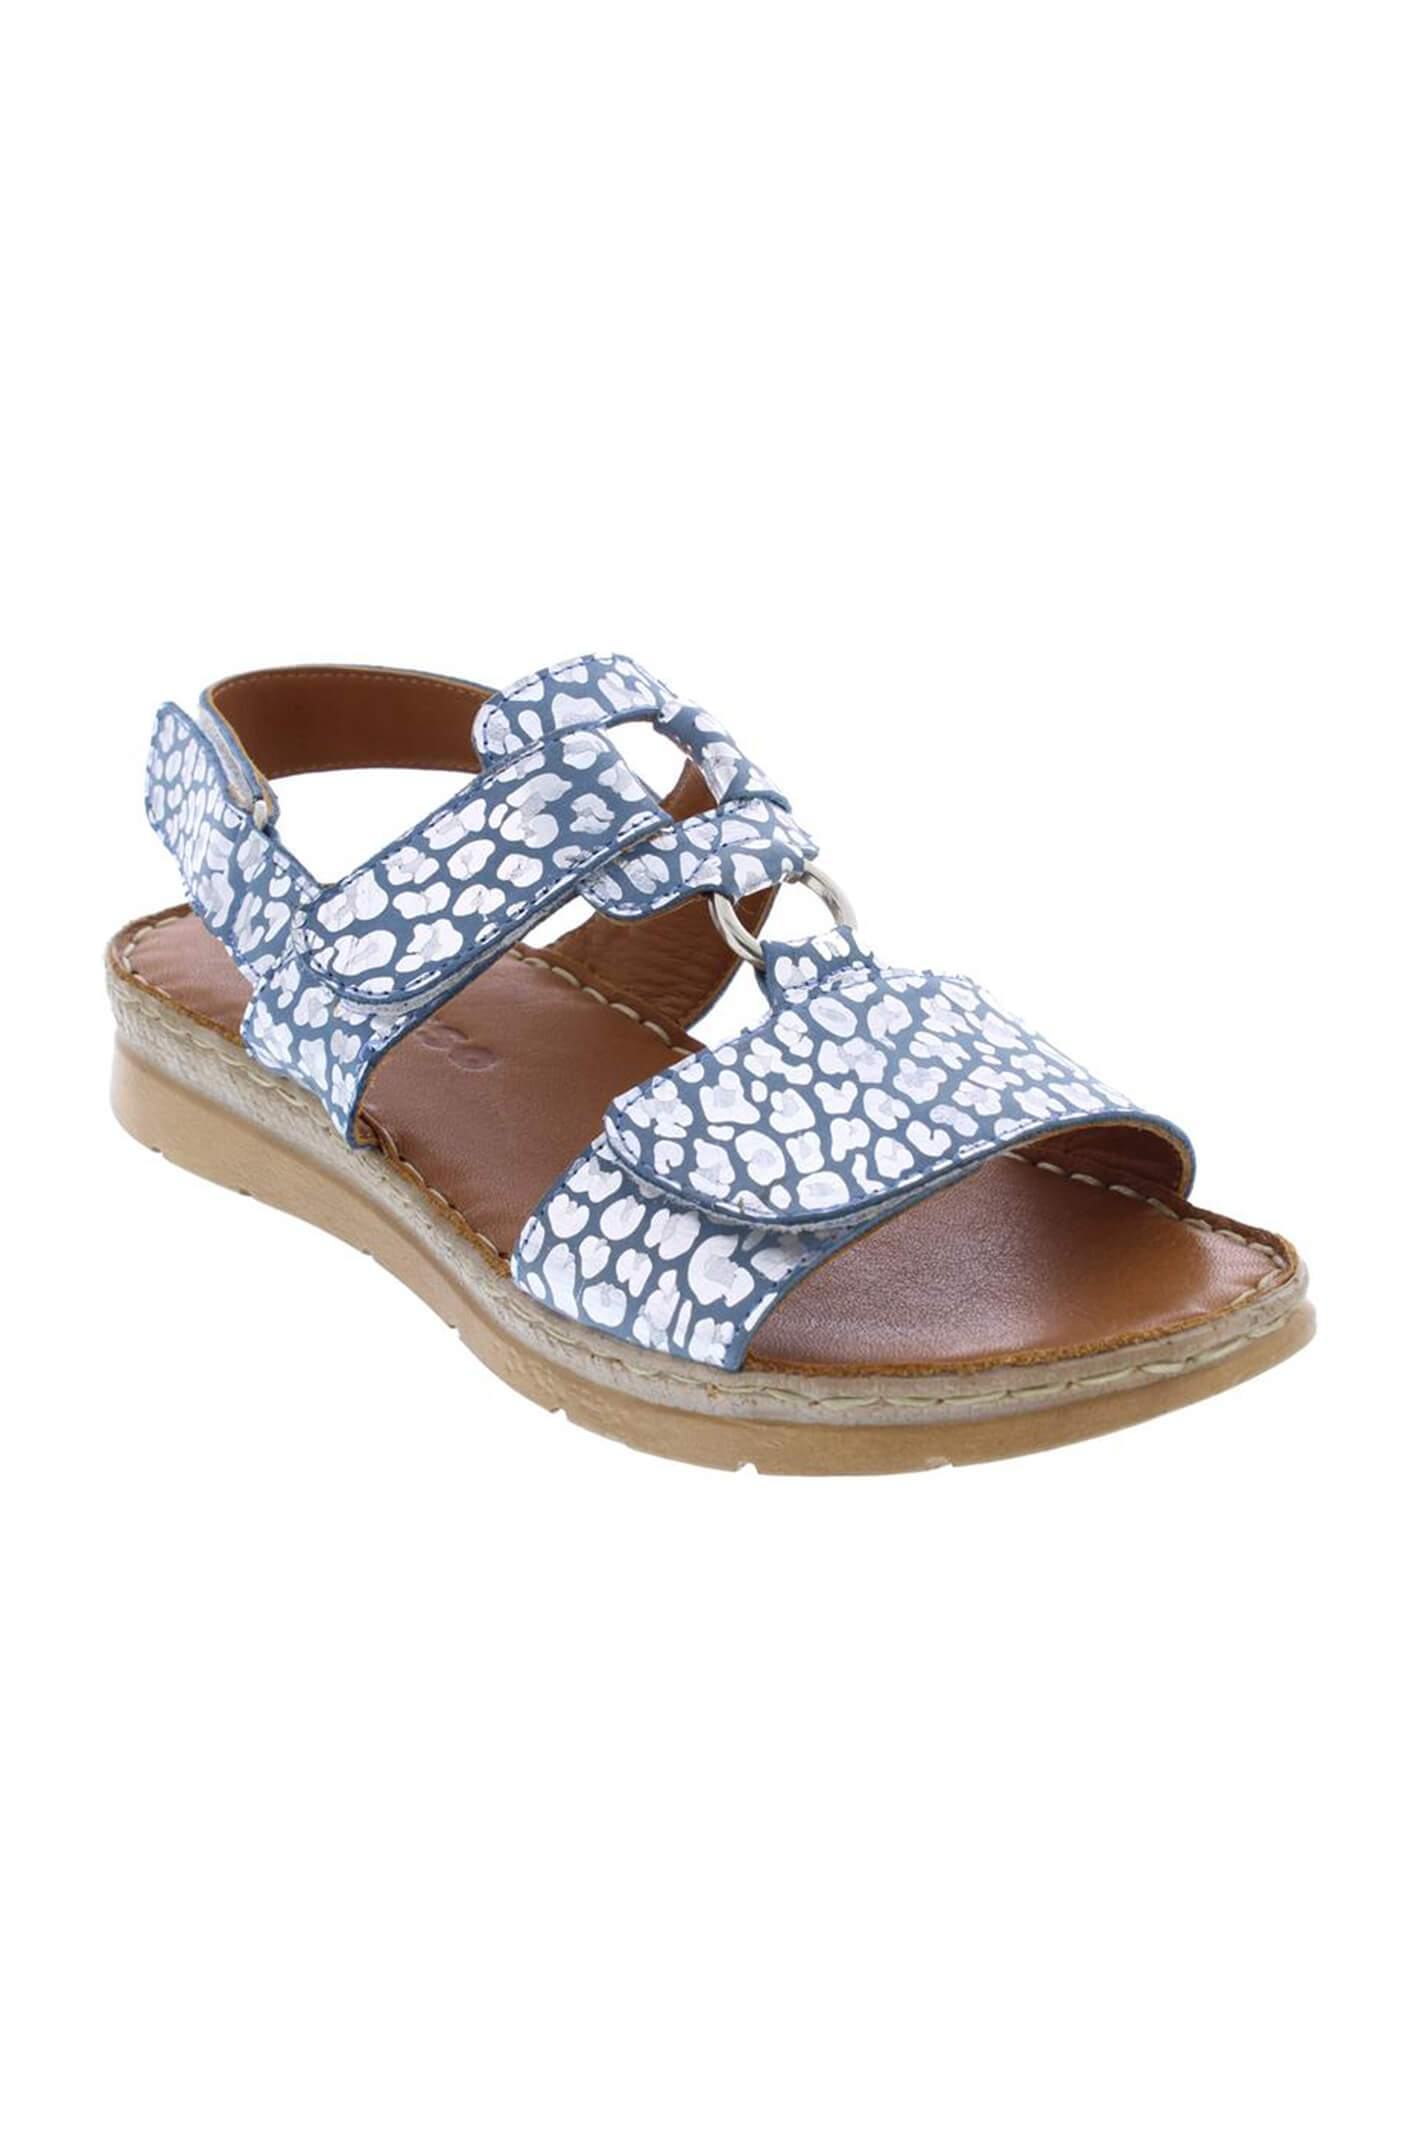 Adesso A6080 Liberty Aegean Leopard Leather Sandals 38 R